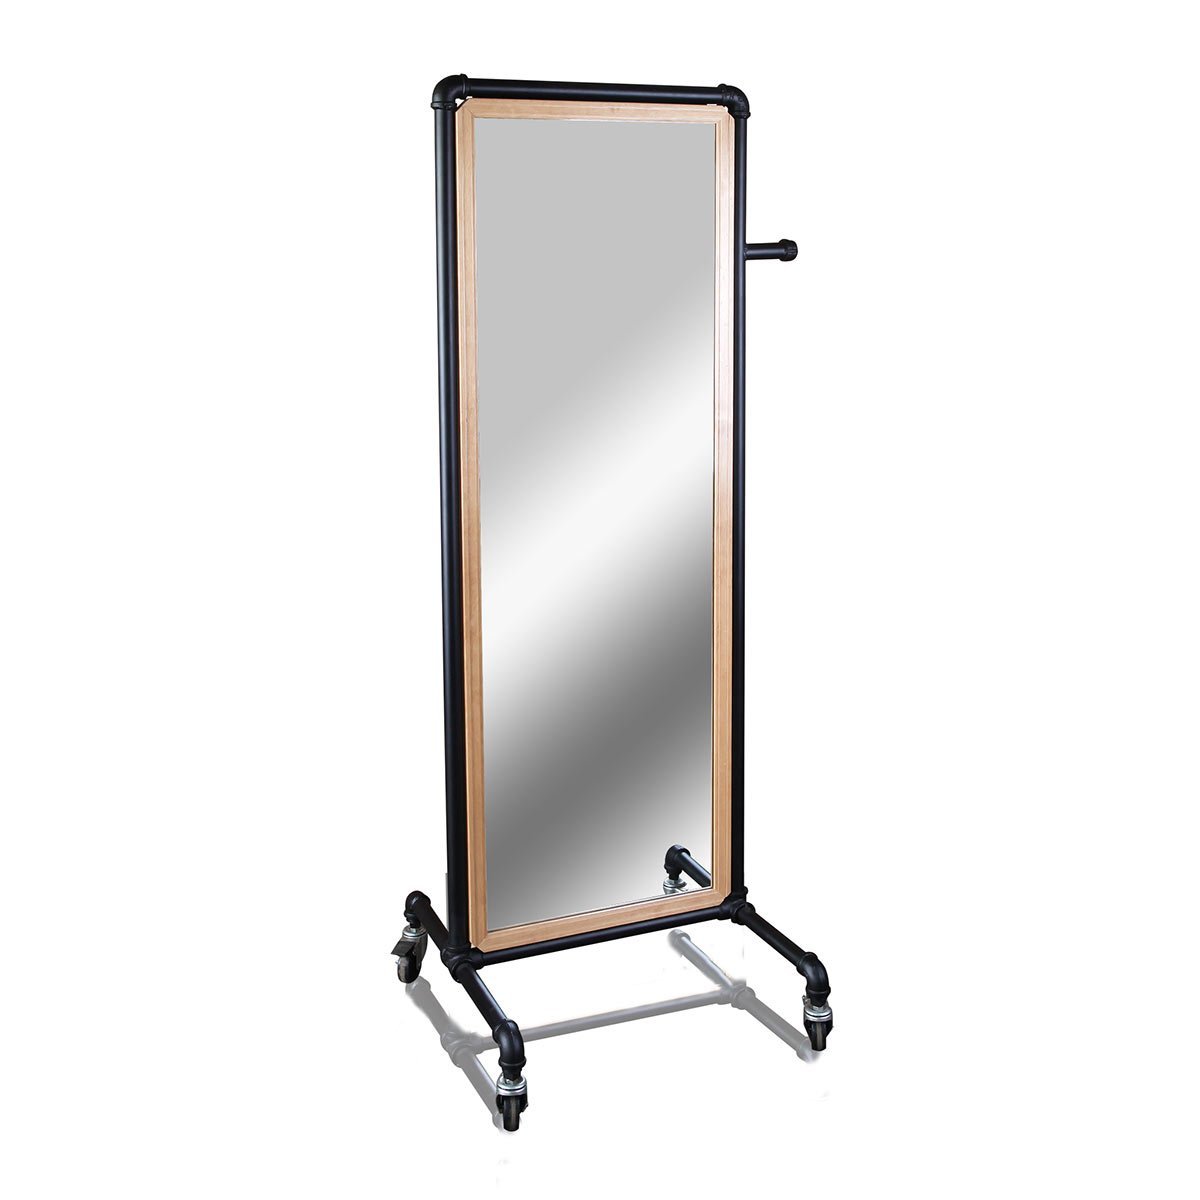 Pipeline Mirror with Casters